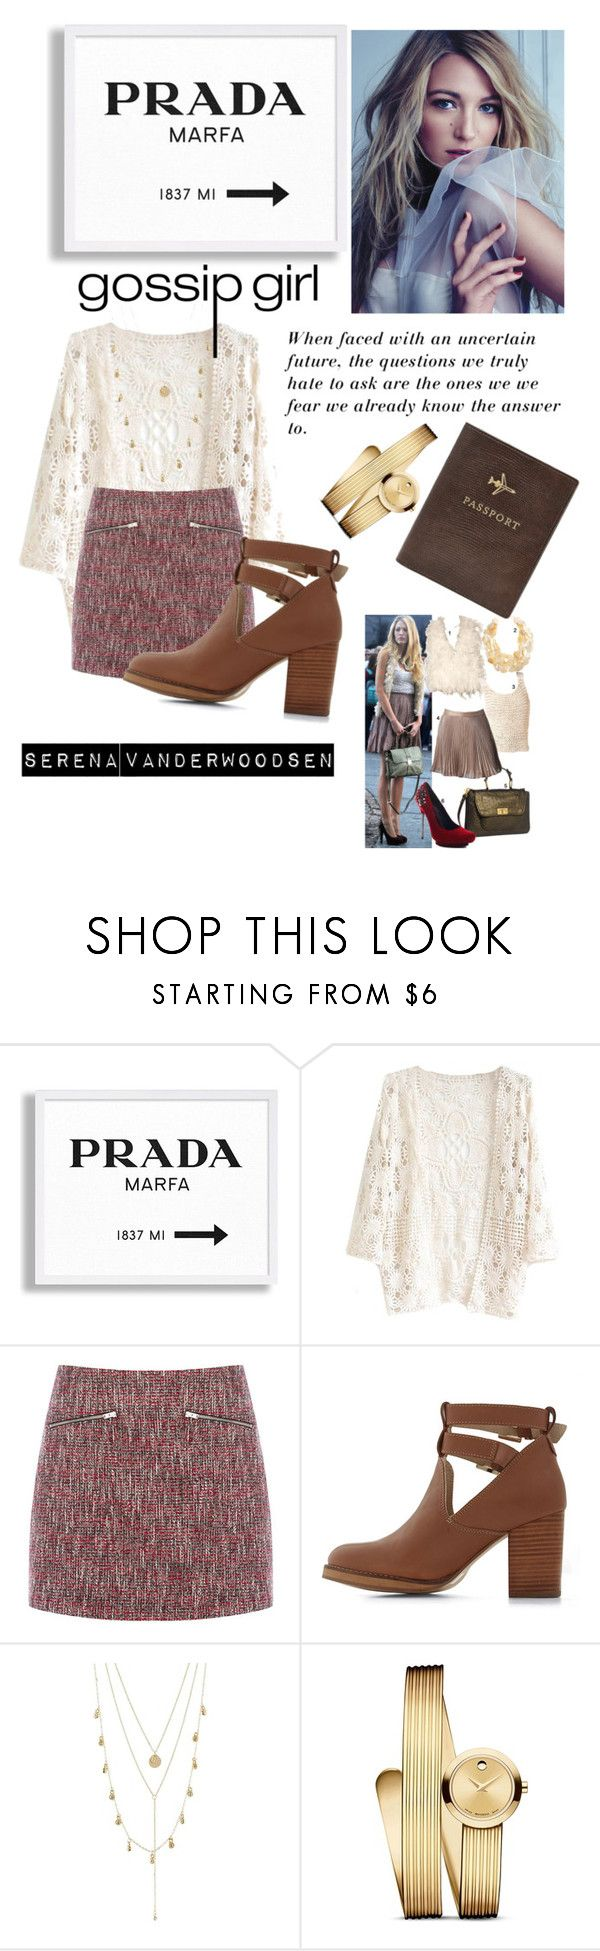 """Gossip Girl- Serena Vanderwoodsen"" by blair-waldorff ❤ liked on Polyvore featuring Prada, Warehouse, Seychelles, Charlotte Russe, Movado and FOSSIL"